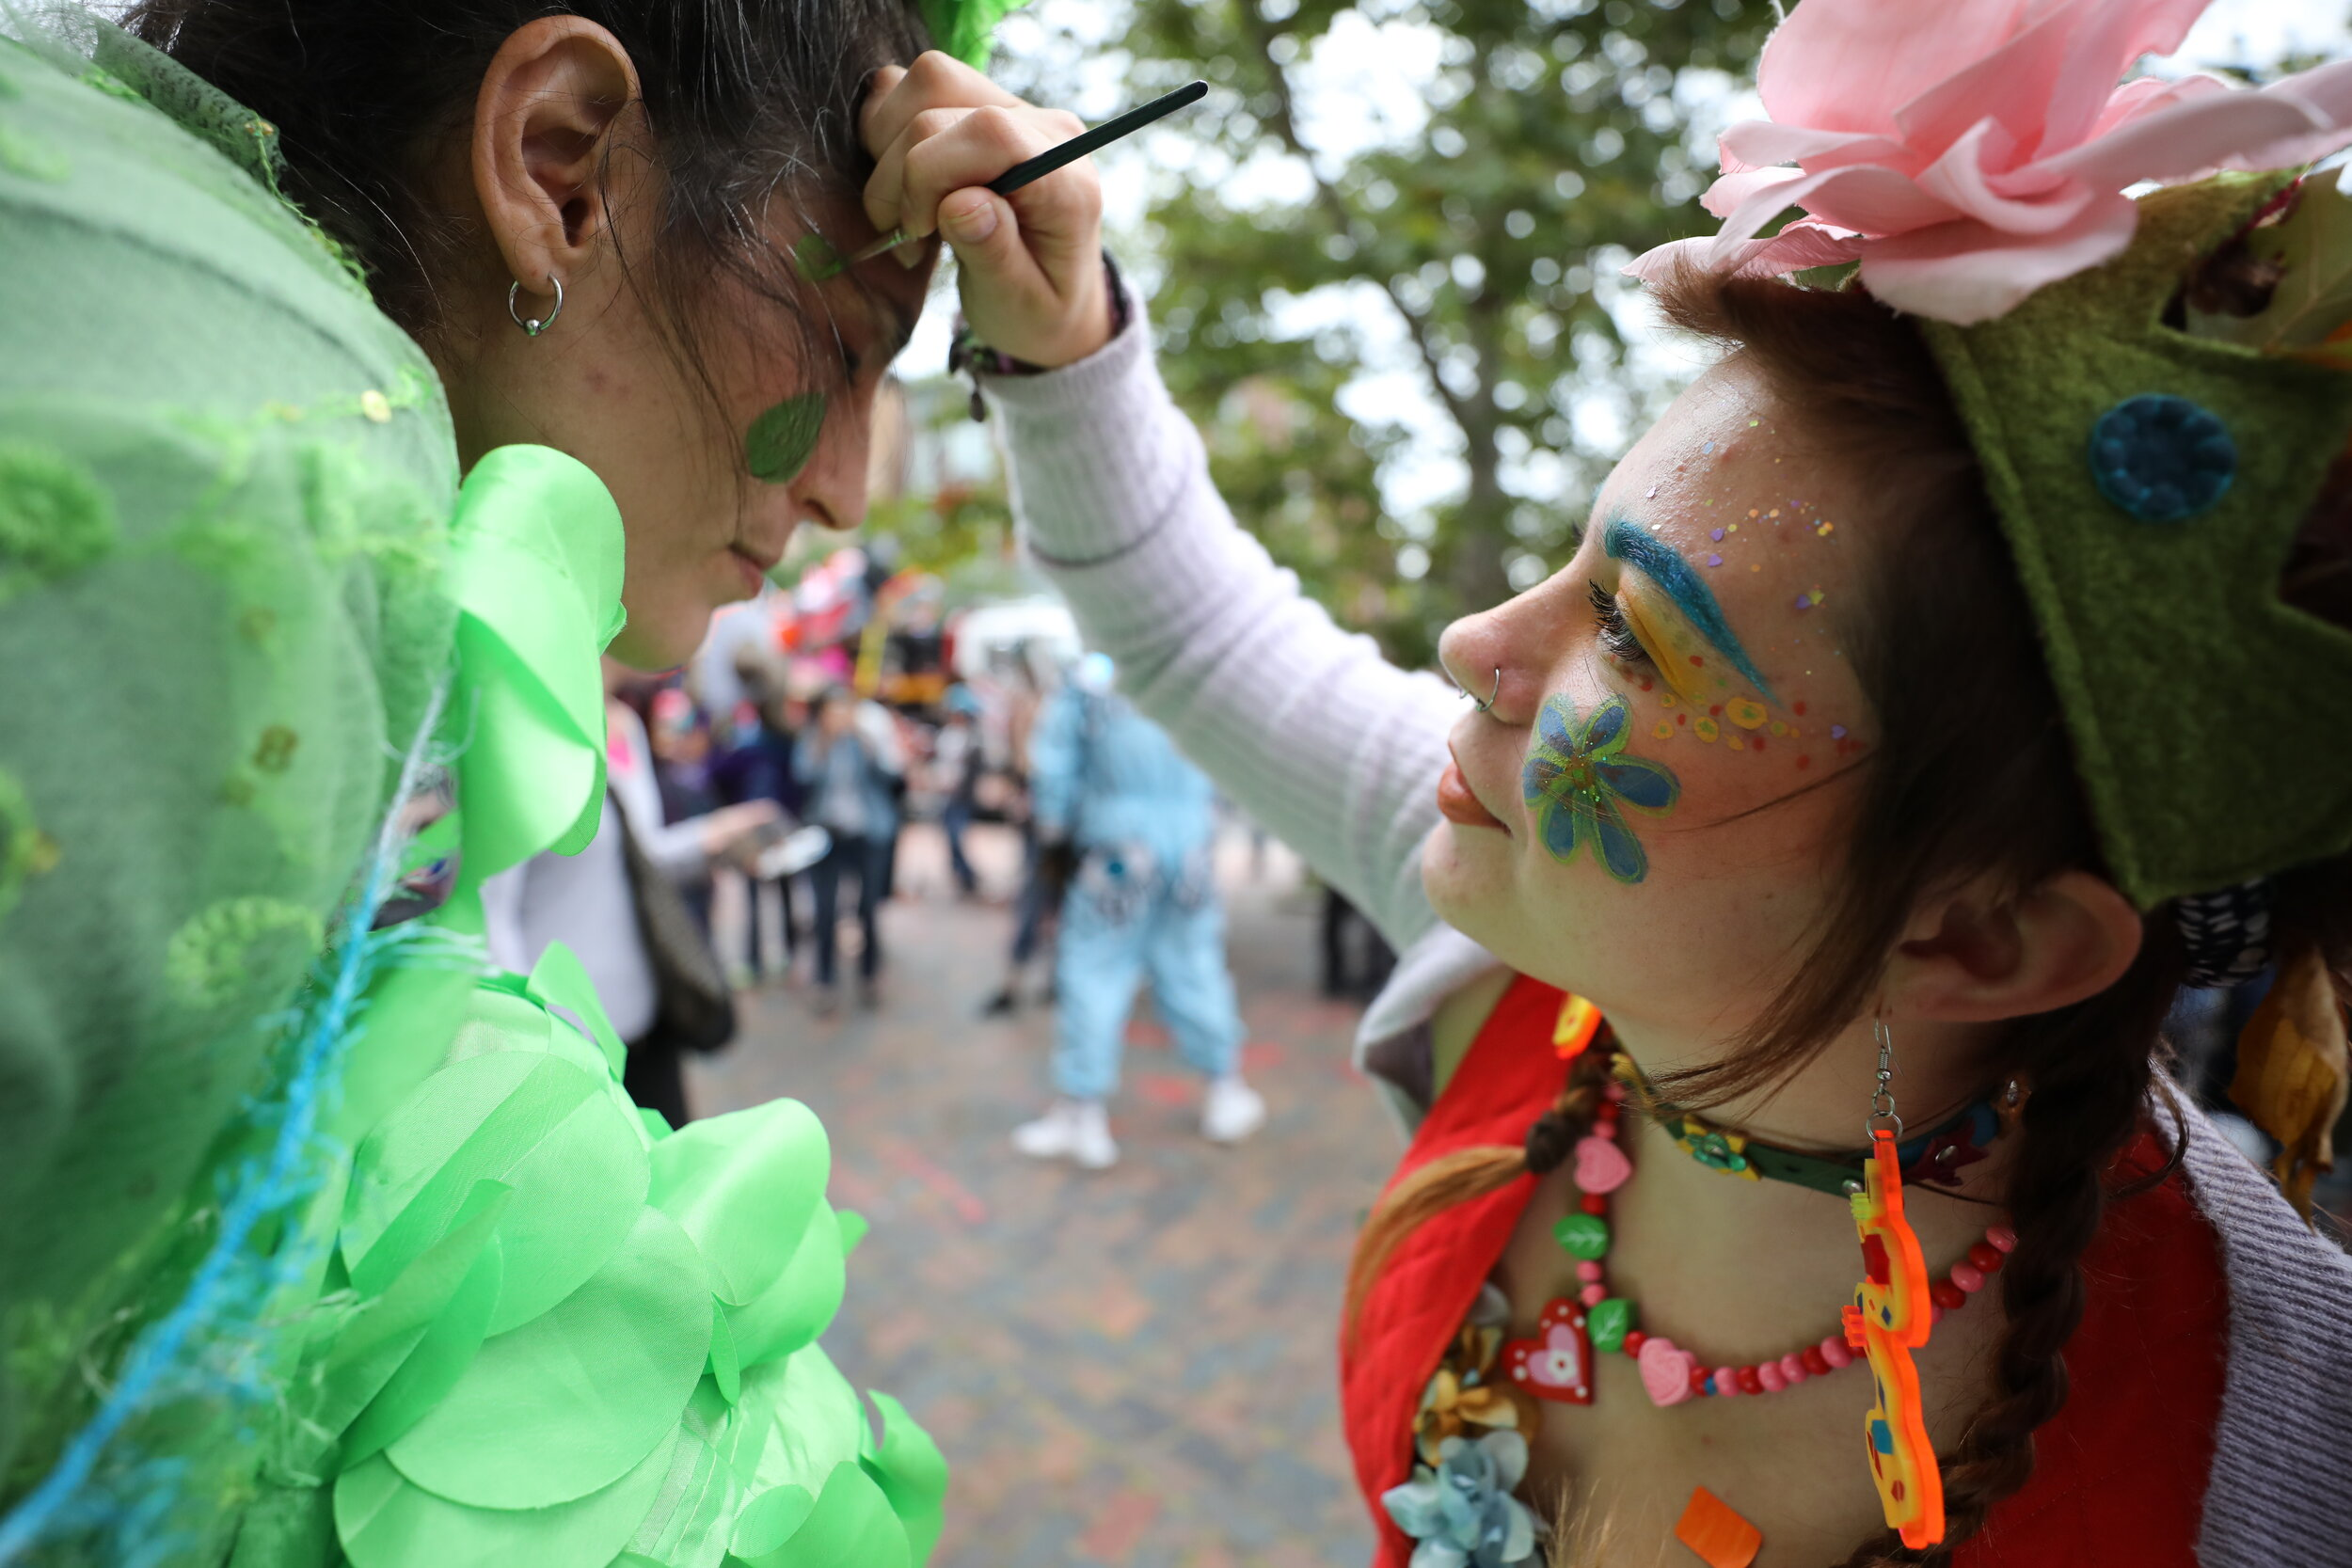 Two performers get ready to launch the JOY Parade. Photo by Dominic Chavez